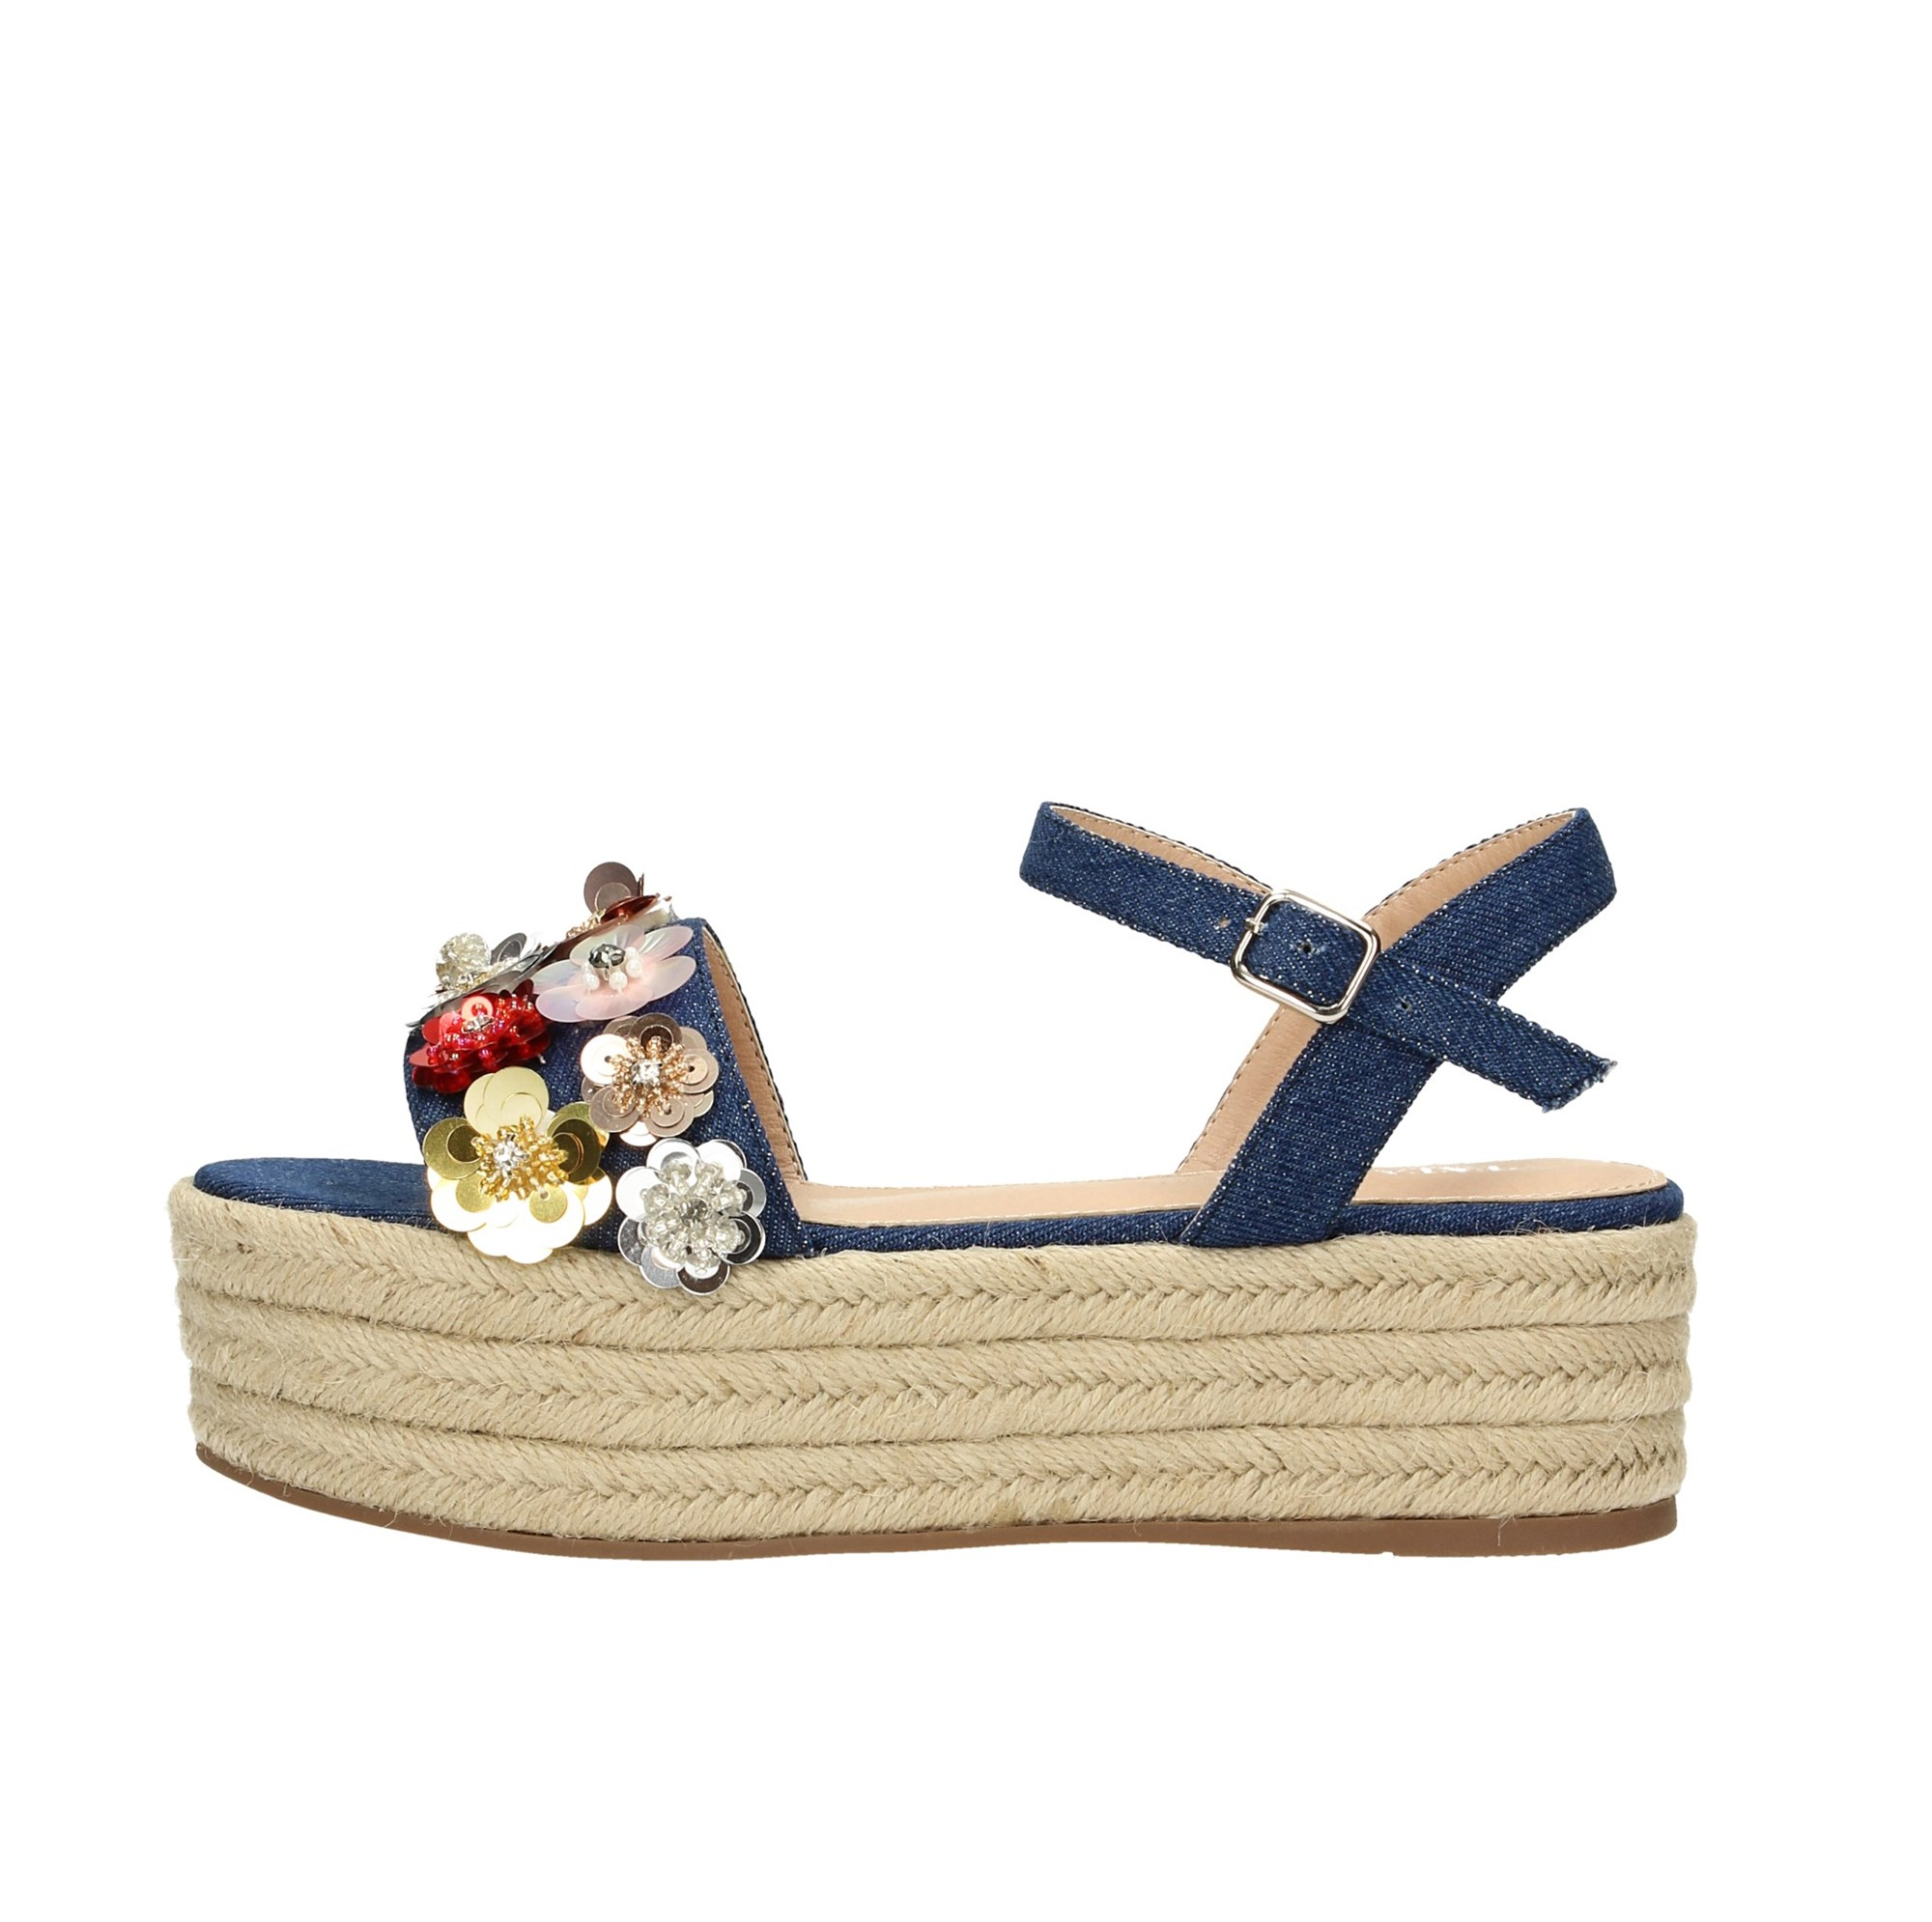 Tata Italia Shoes Woman Sandali Blue DS543-16B